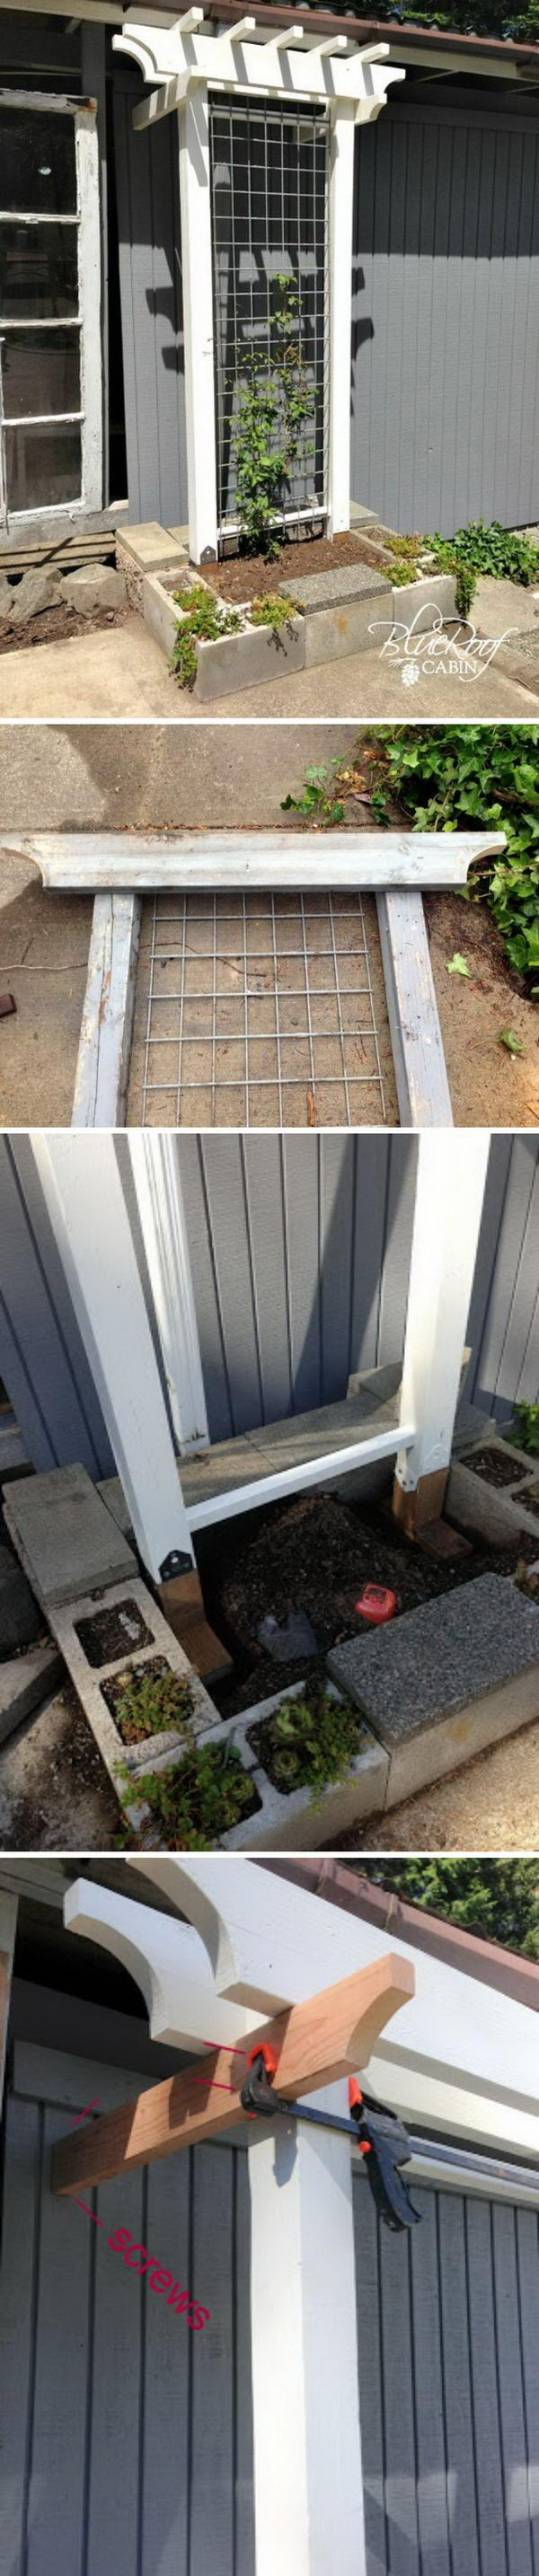 Awesome DIY Garden Trellis